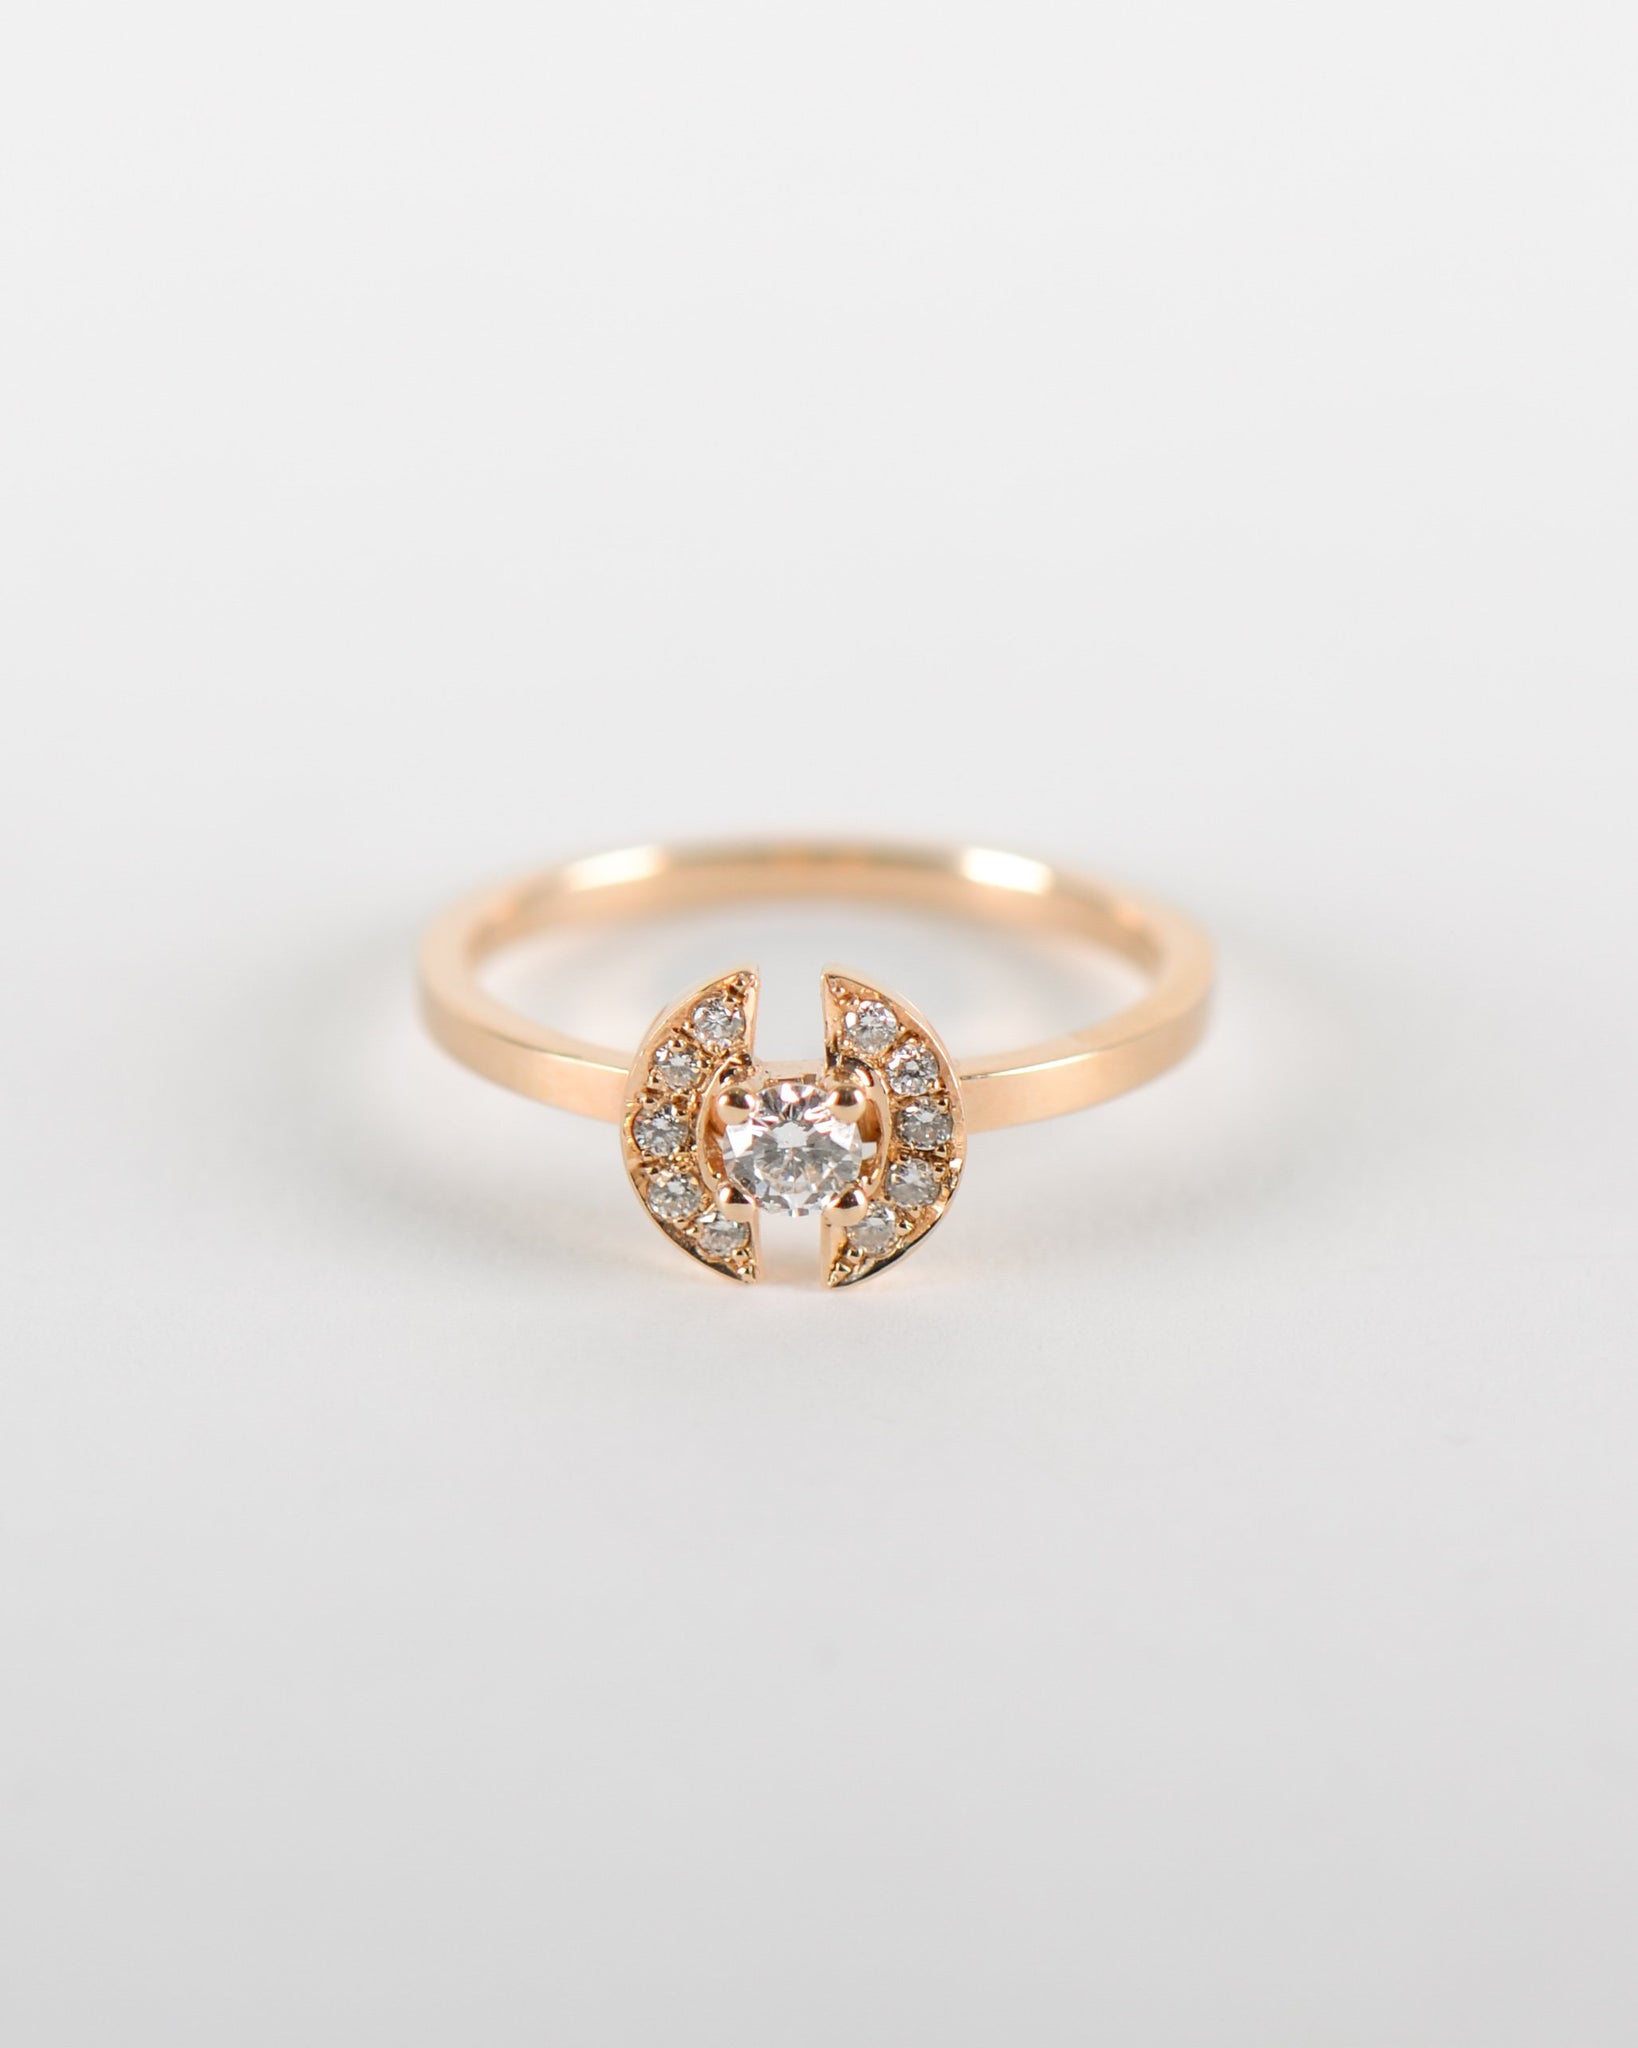 Stein Ring in Yellow Gold with Recycled Diamond